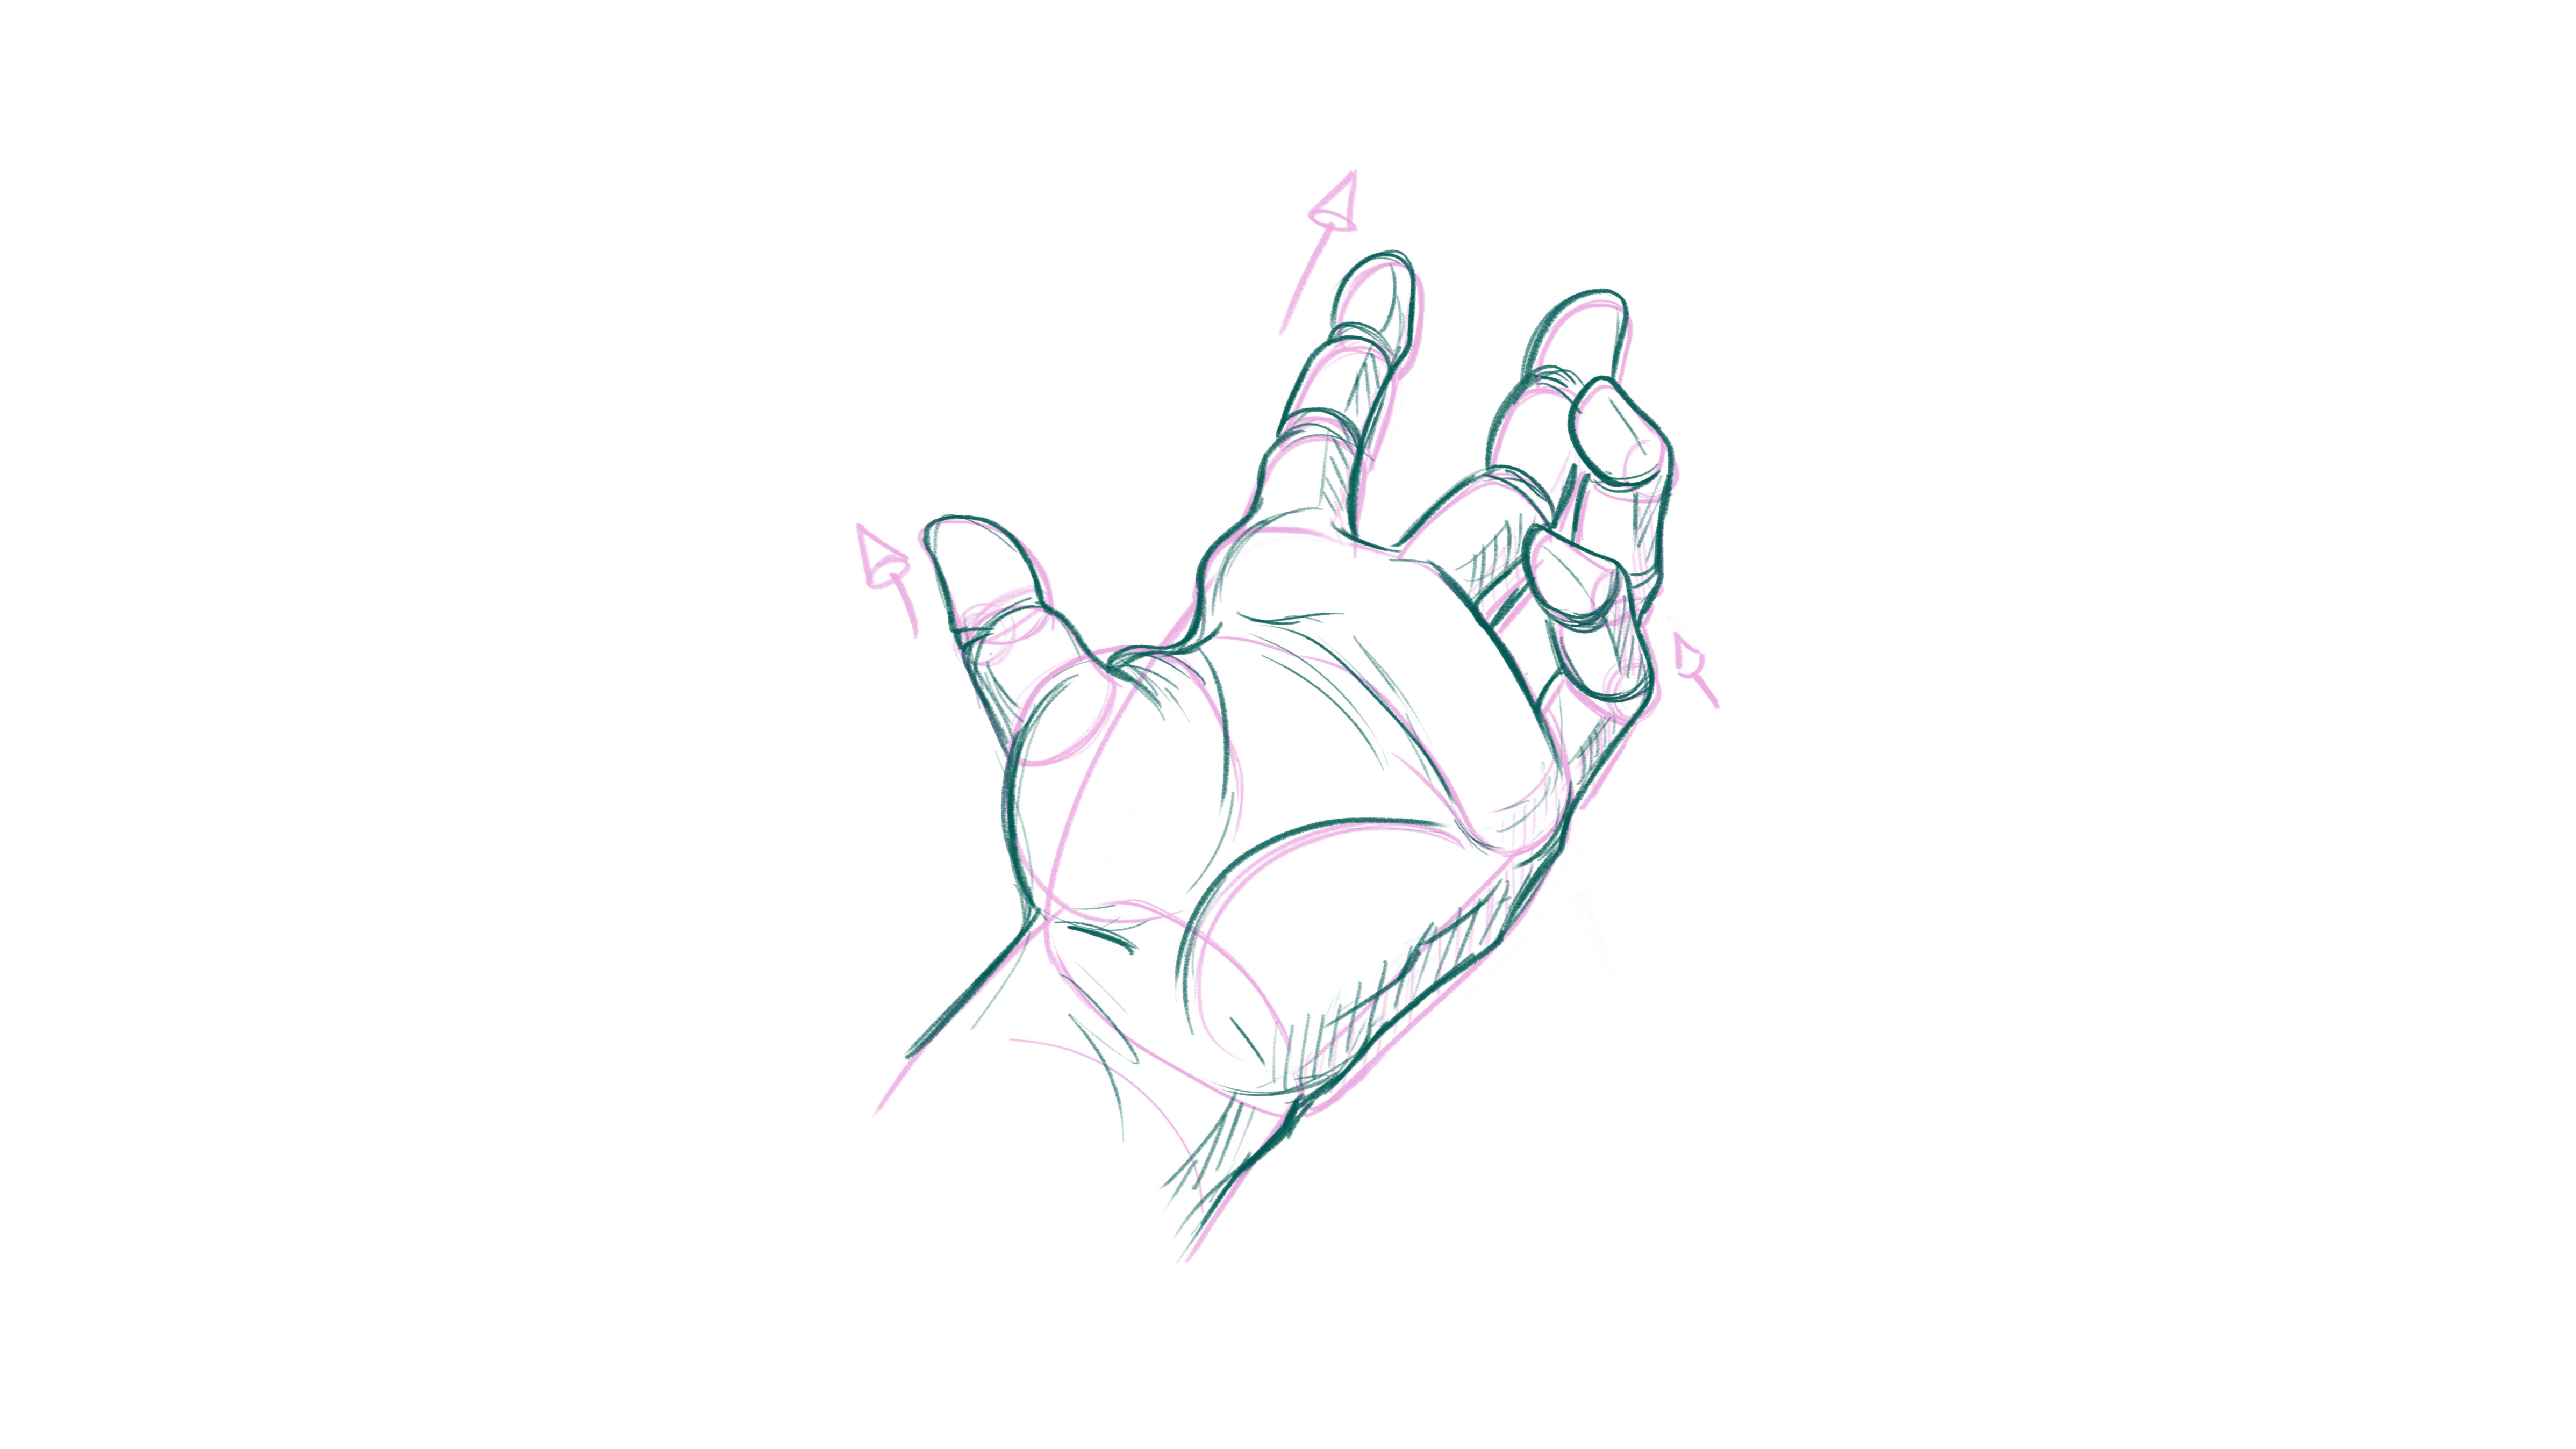 How to draw hands: begin to find gesture and forms